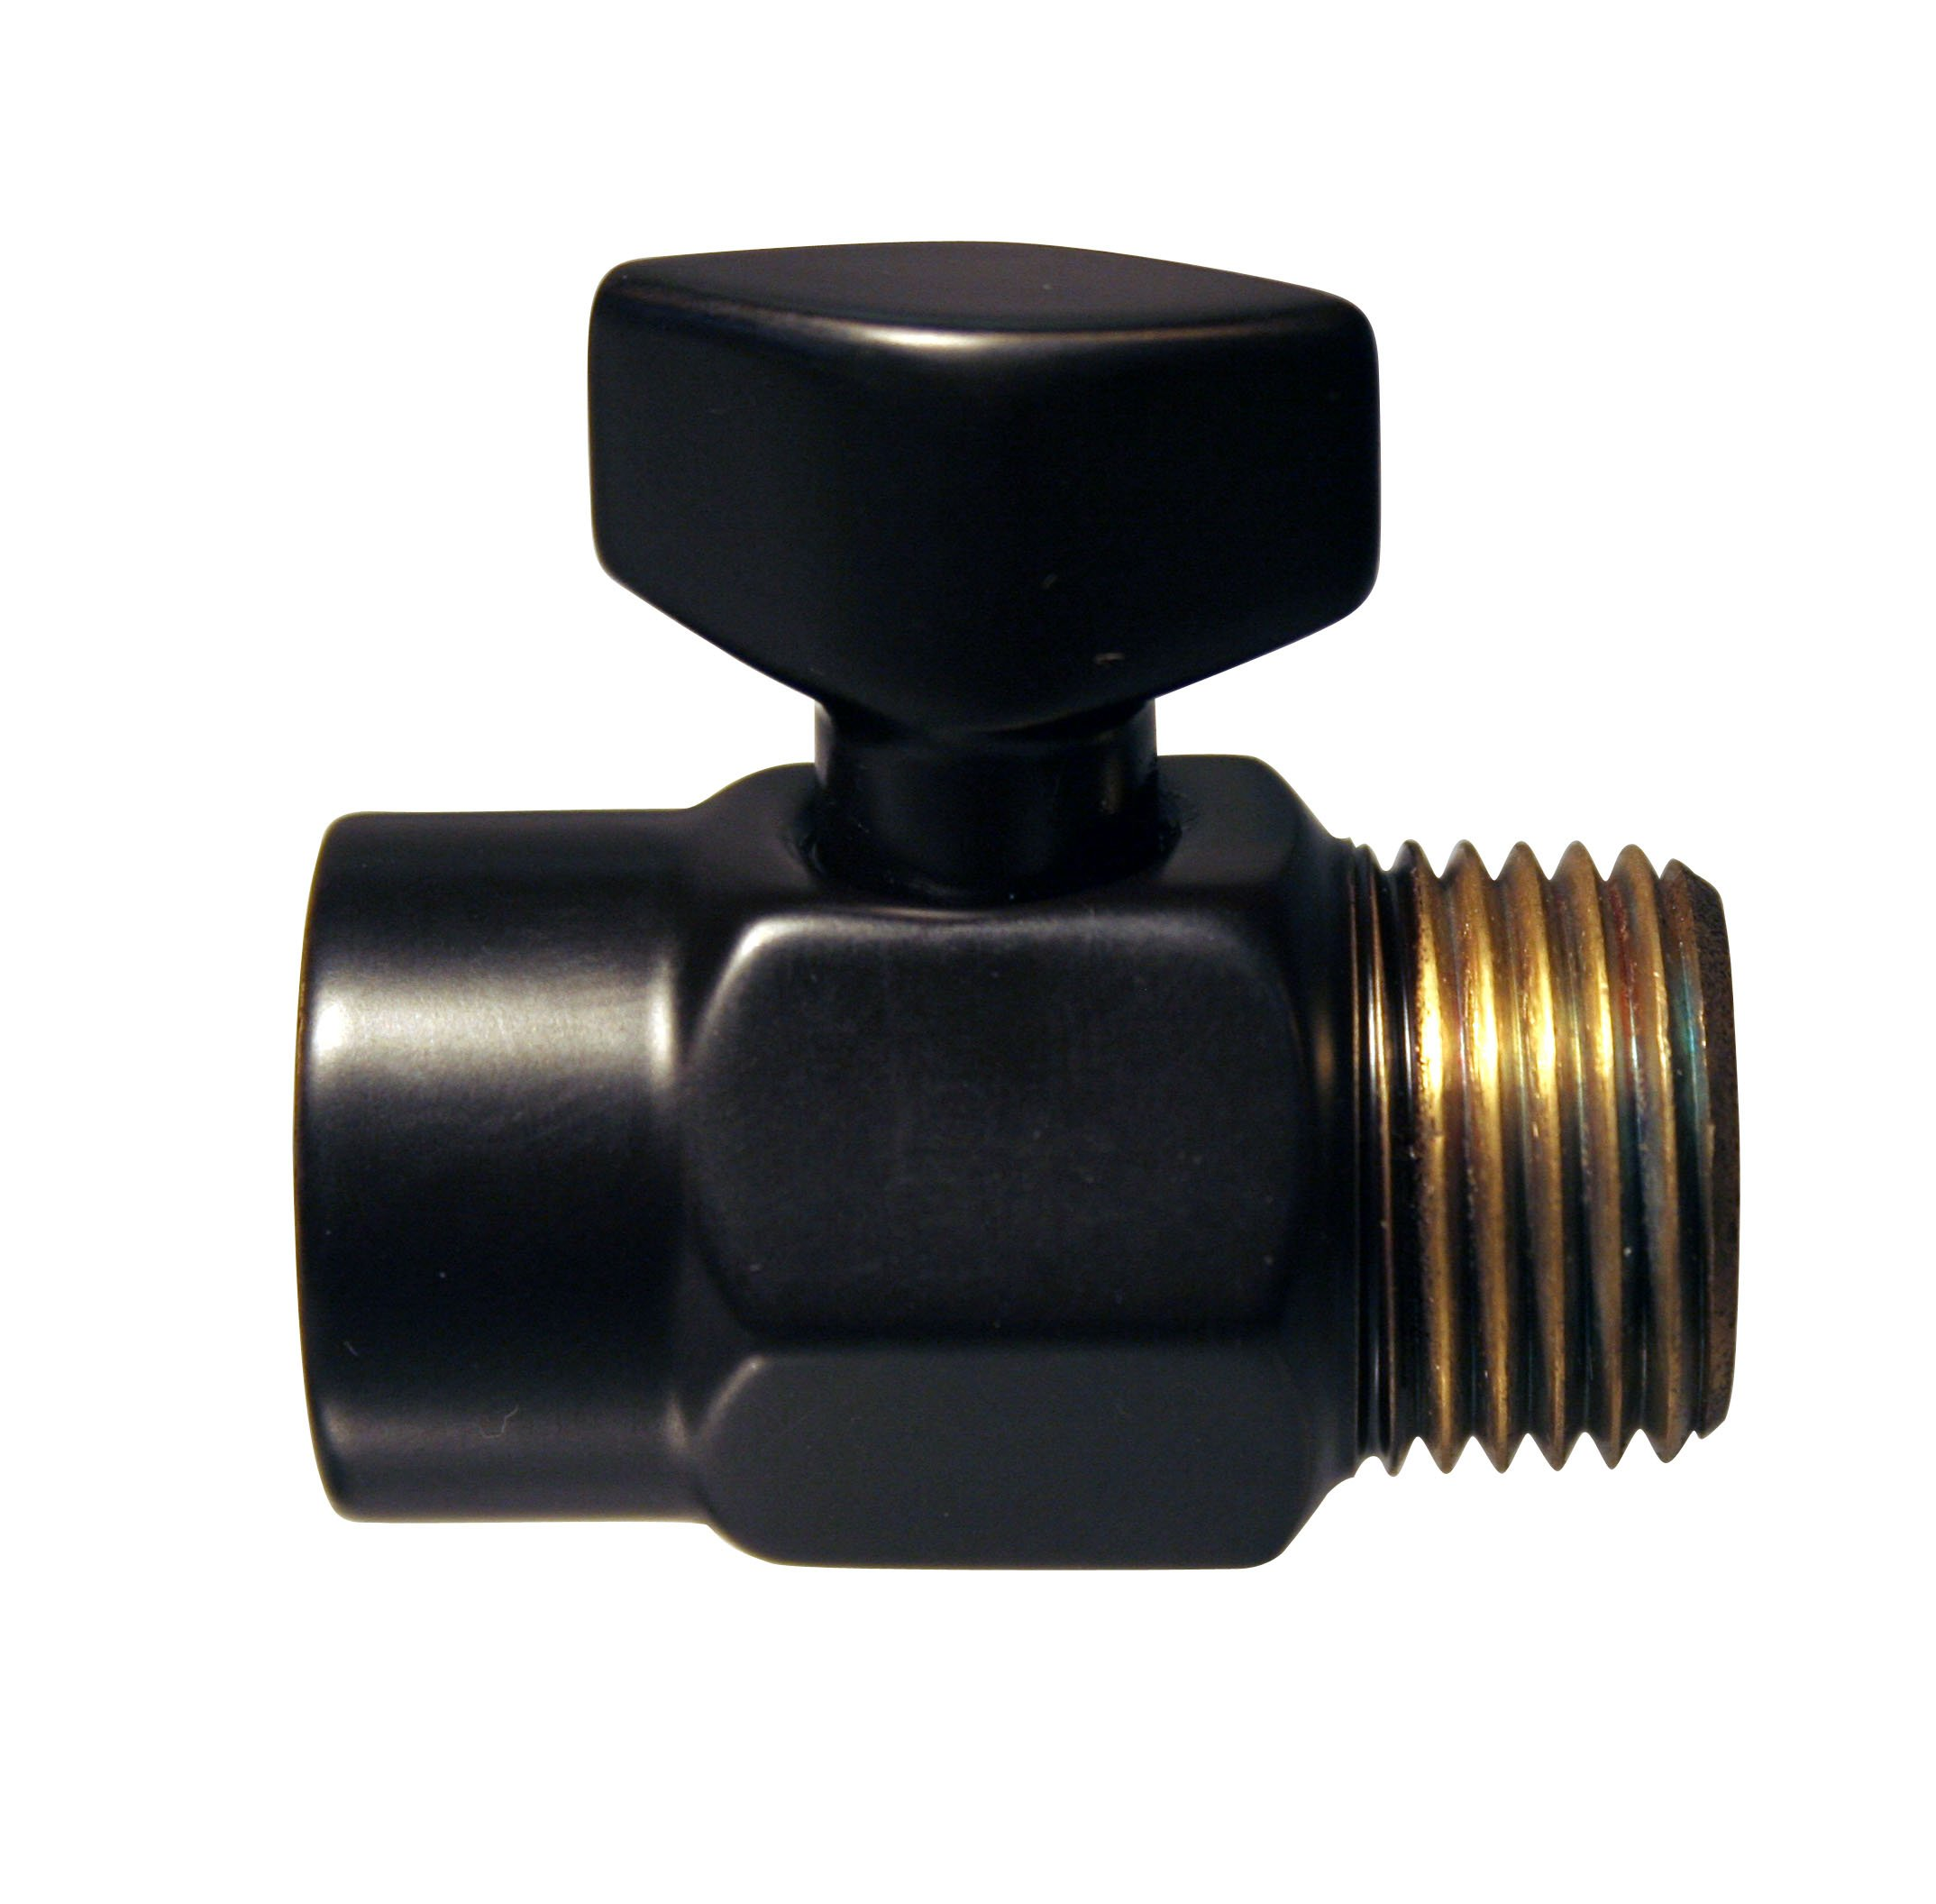 Westbrass 1/2'' Shower Arm Volume Control Trickle Valve, Oil Rubbed Bronze, D309-12 by Westbrass